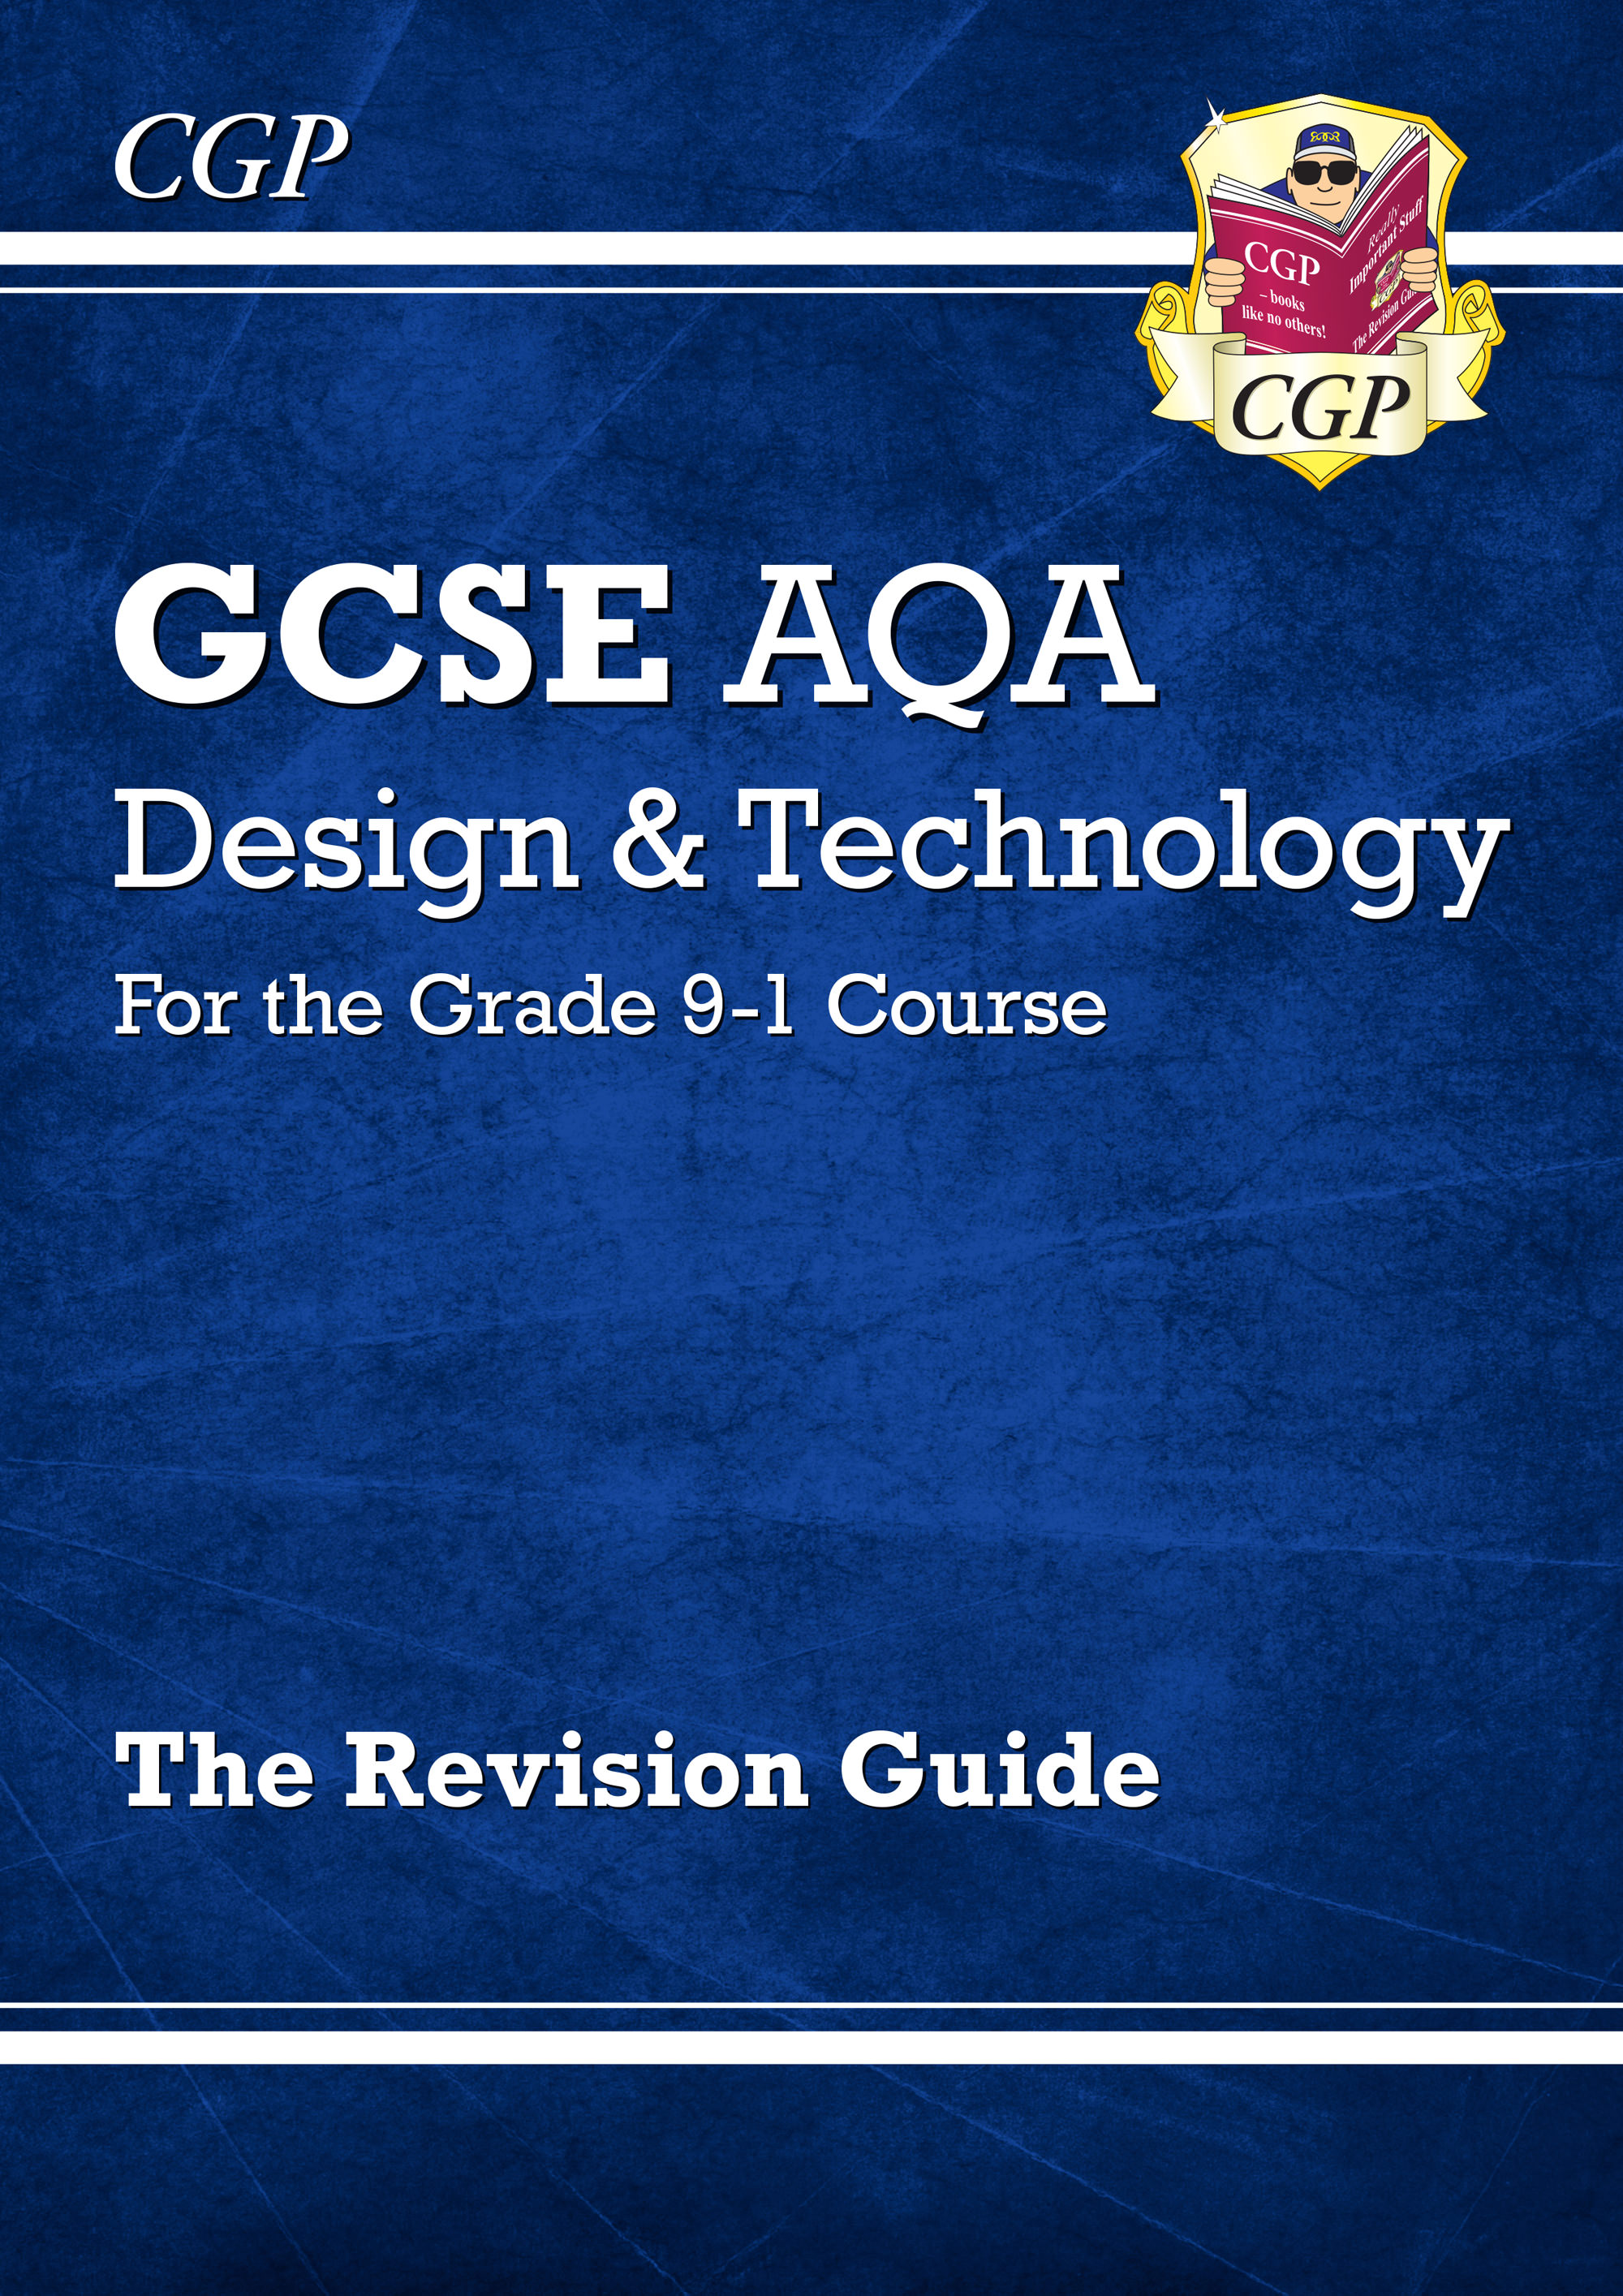 TAR41D - New Grade 9-1 GCSE Design & Technology AQA Revision Guide (Online Edition)